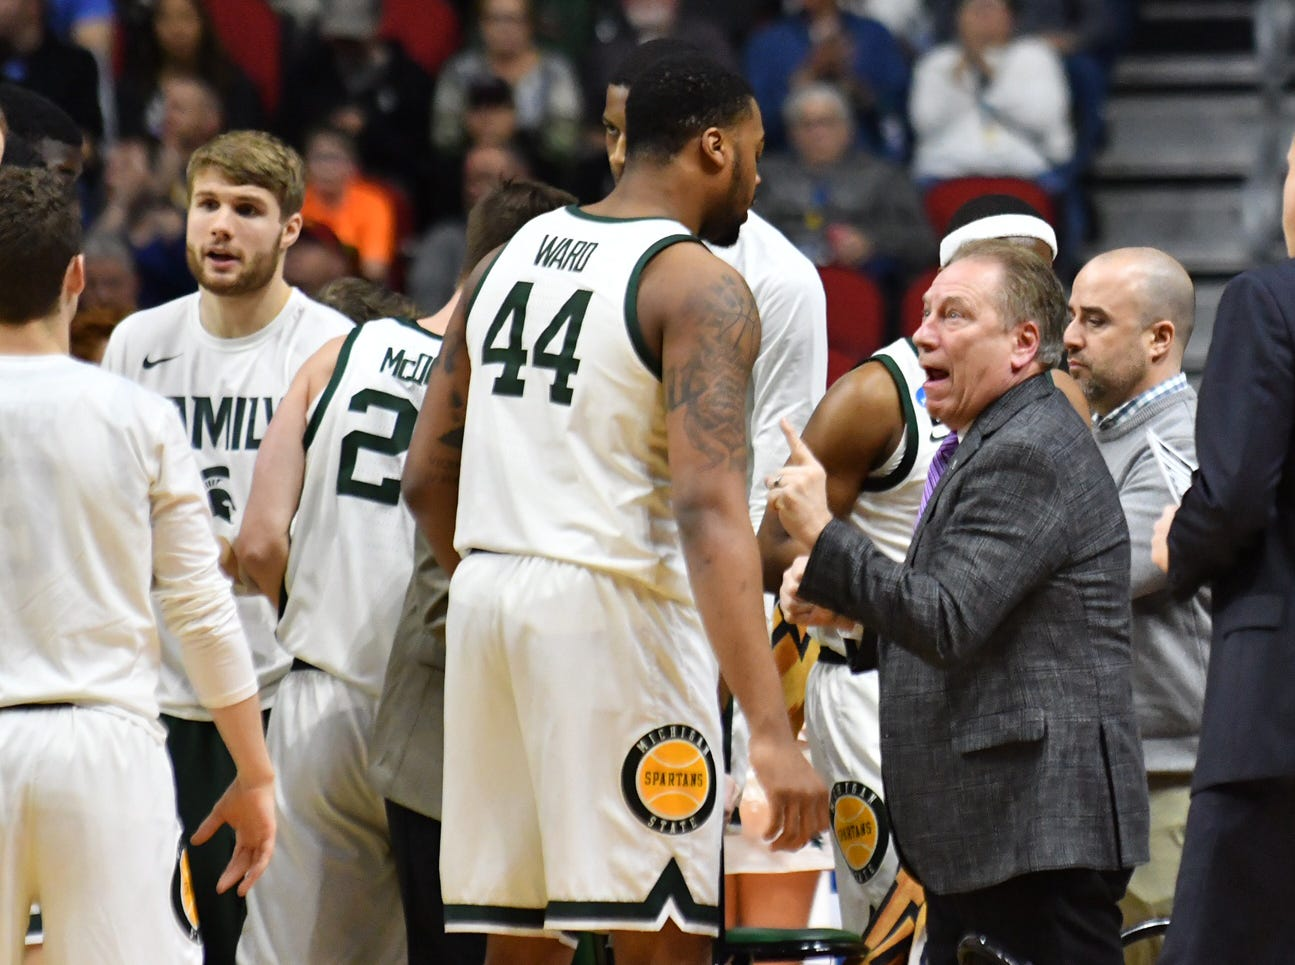 Tom Izzo has some instructions for Nick Ward during the first half.